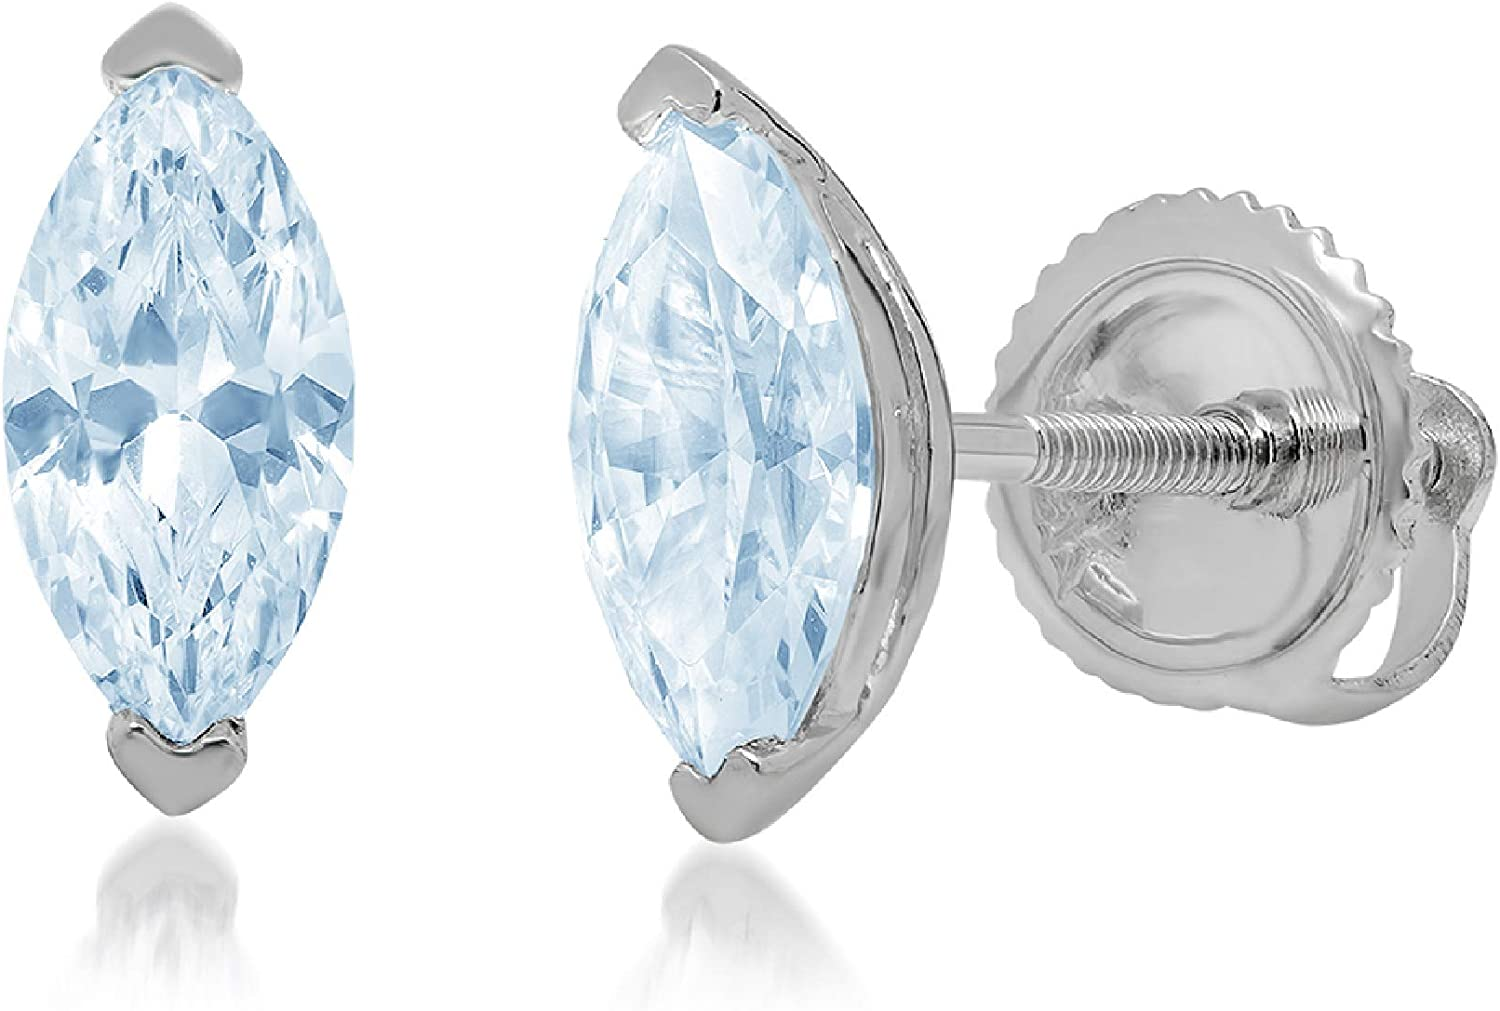 Clara Pucci 1.1 ct Brilliant Marquise Cut Solitaire VVS1 Flawless Blue Simulated Diamond Gemstone Pair of Stud Earrings Solid 18K White Gold Screw Back